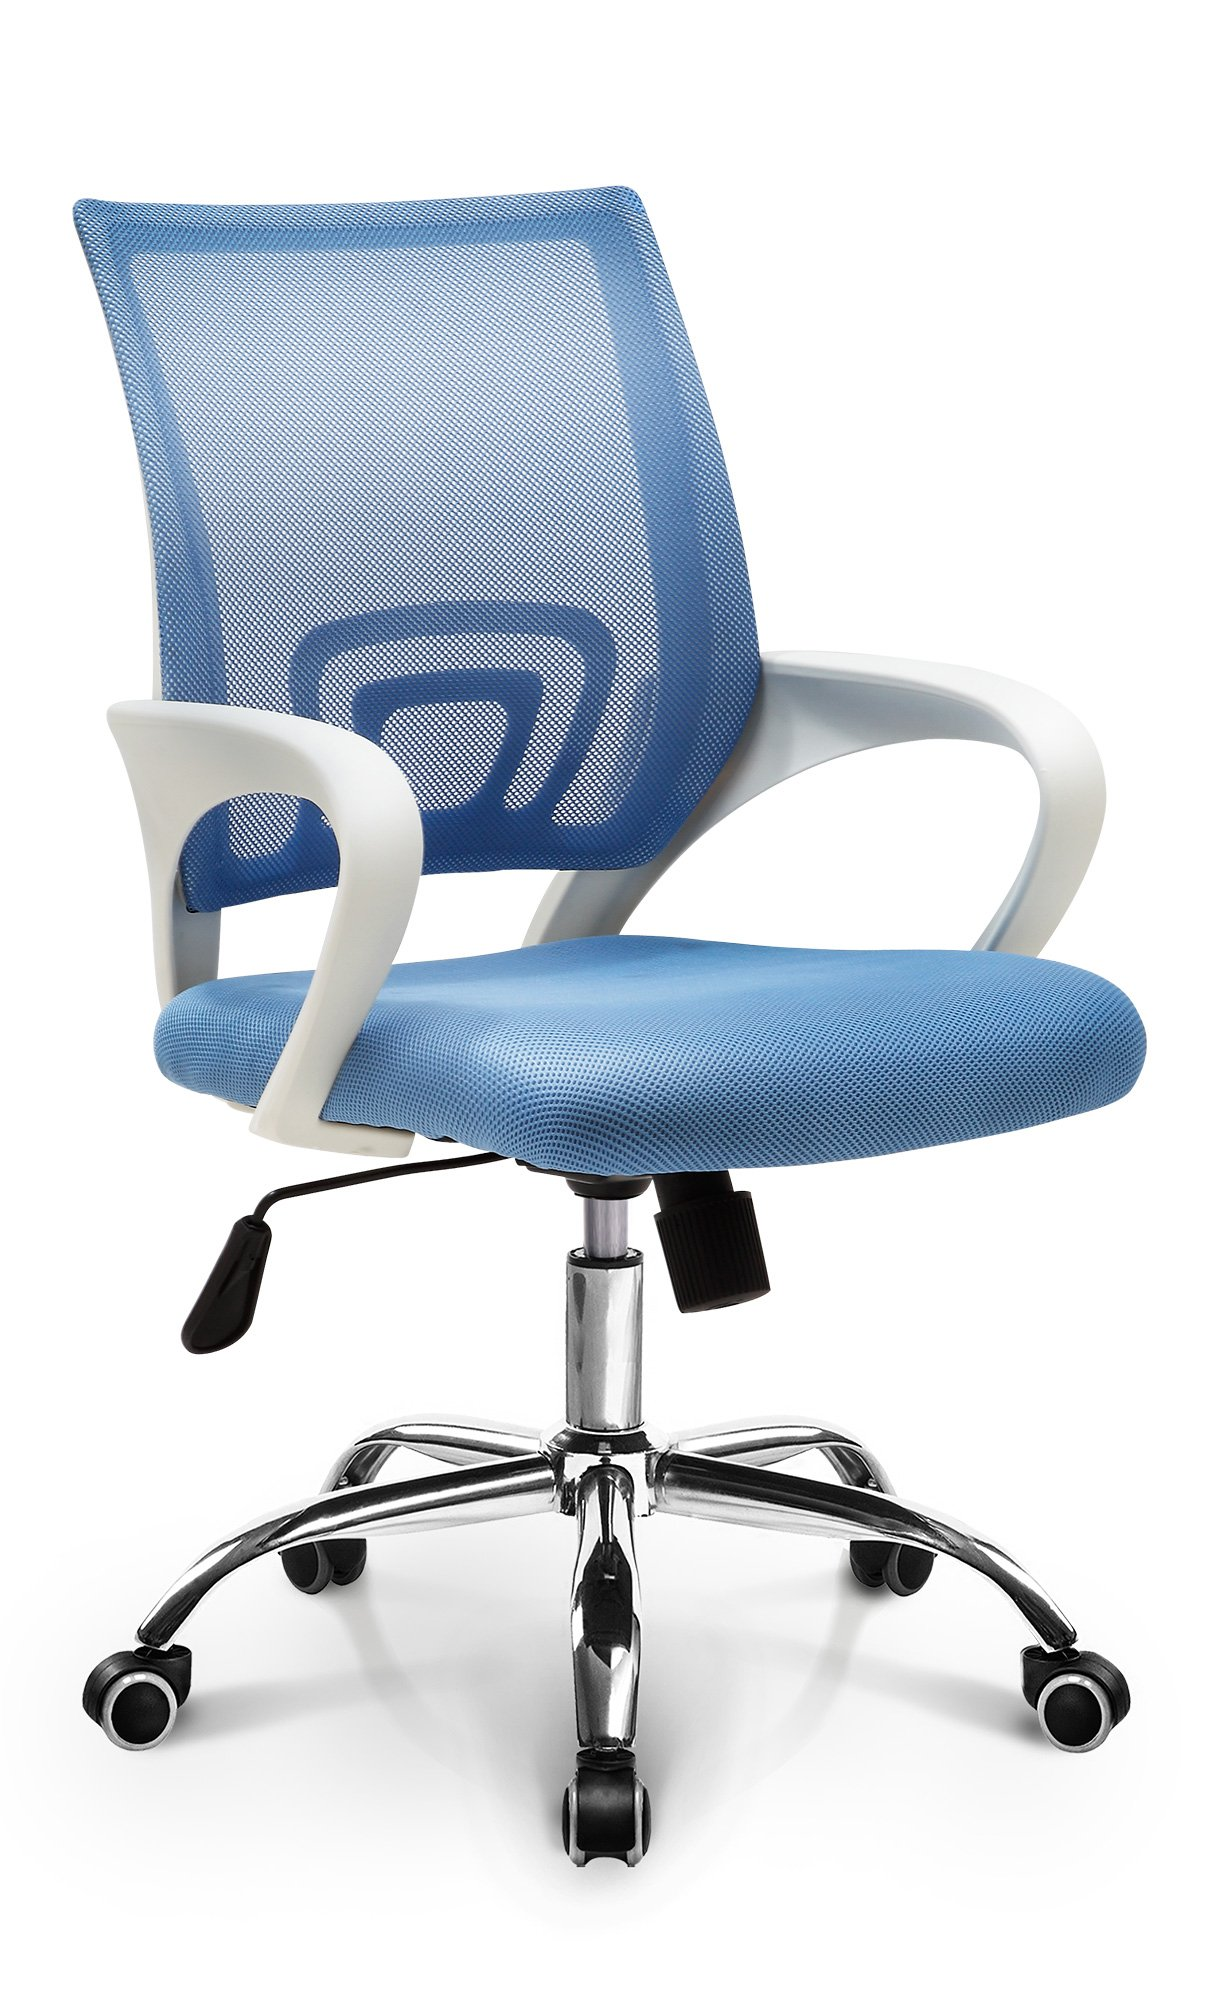 Neo Chair Fashionable Mid-Back Mesh Ergonomic Swivel Desk Home Office Computer Chair with Lumbar Support, Blue